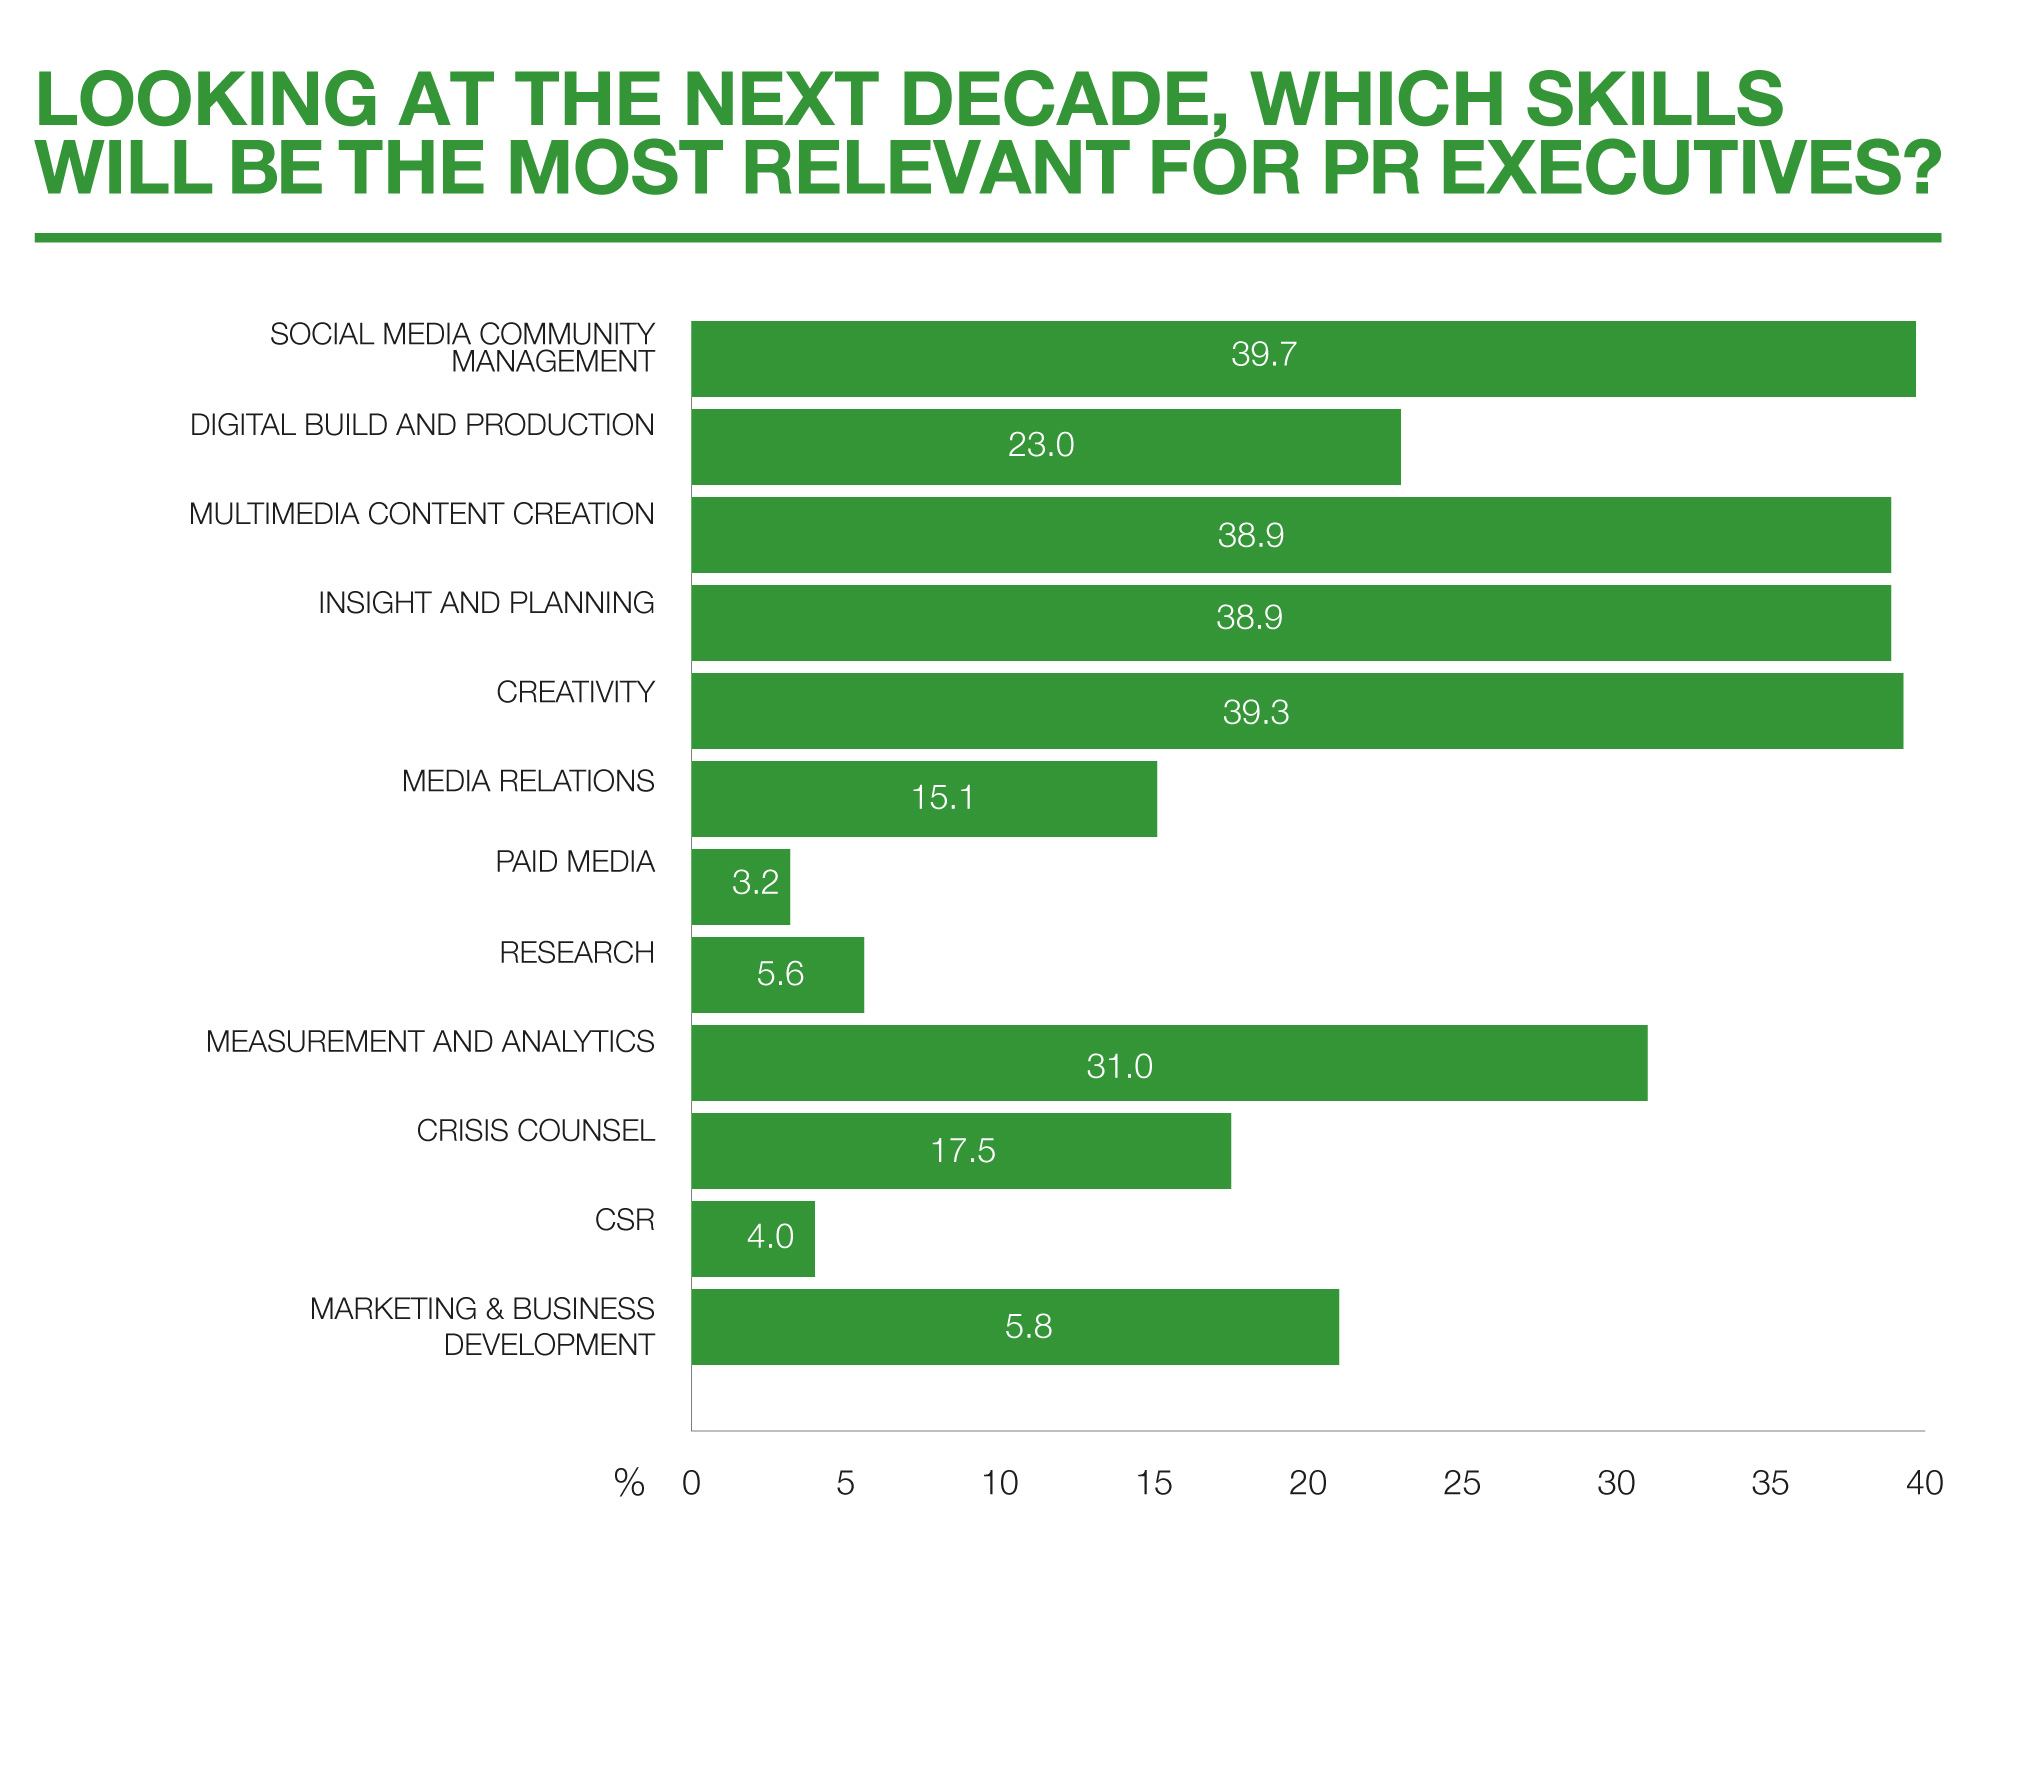 growth opportunities world pr report  10 next decade relevant skills